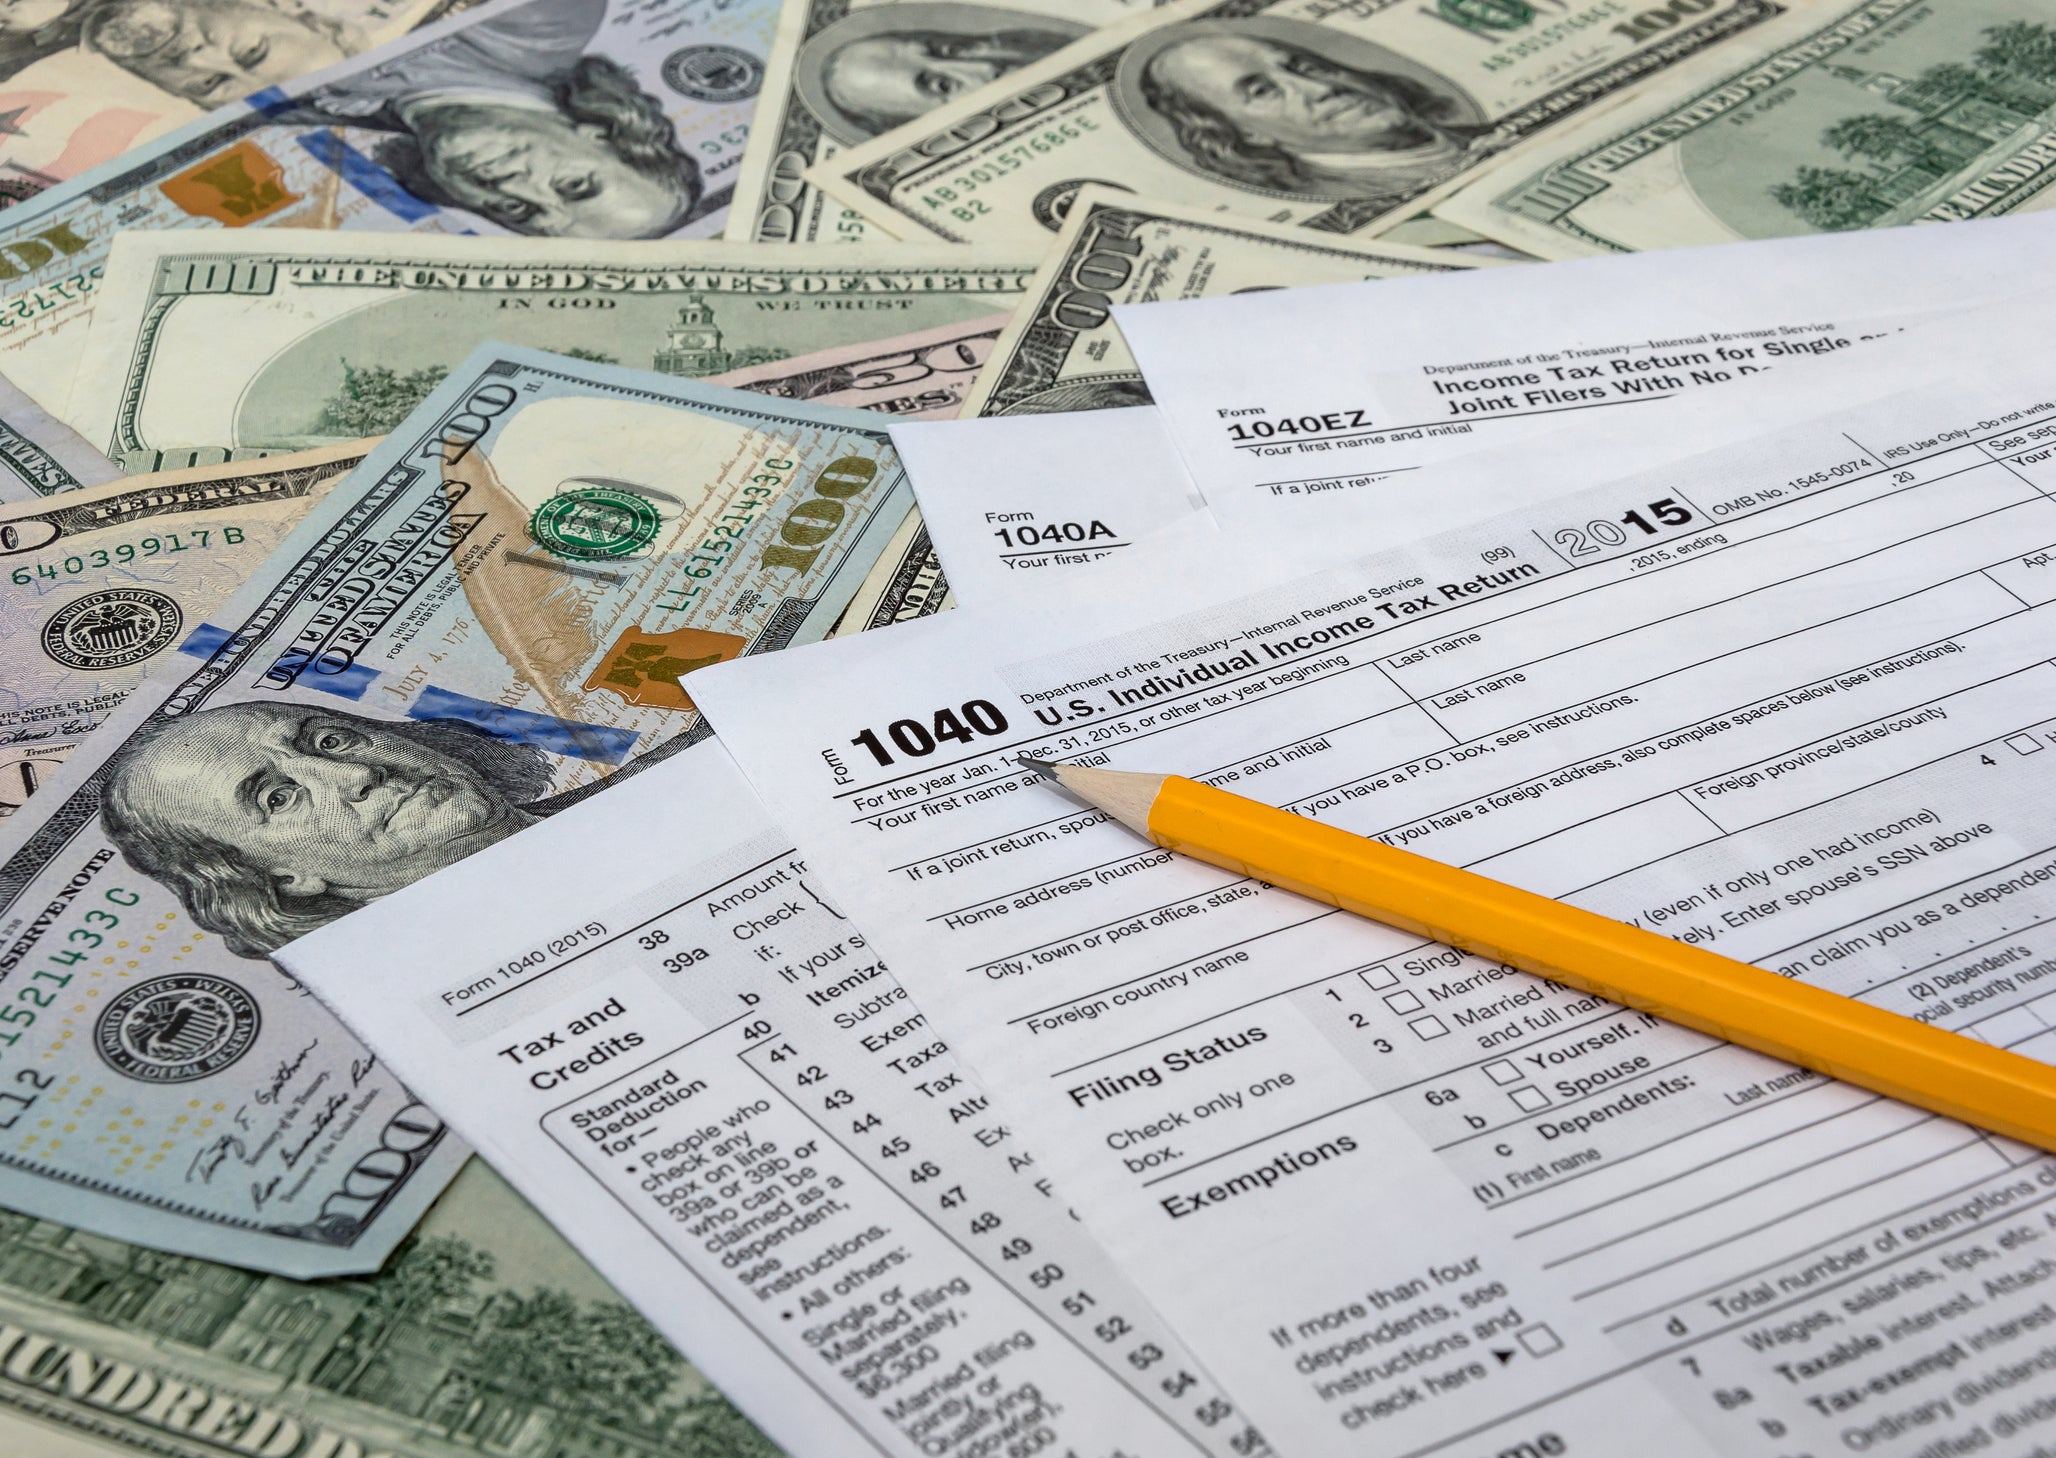 3 Reasons to File Your Tax Return Now -- and 1 Big Reason To Wait | The Motley Fool